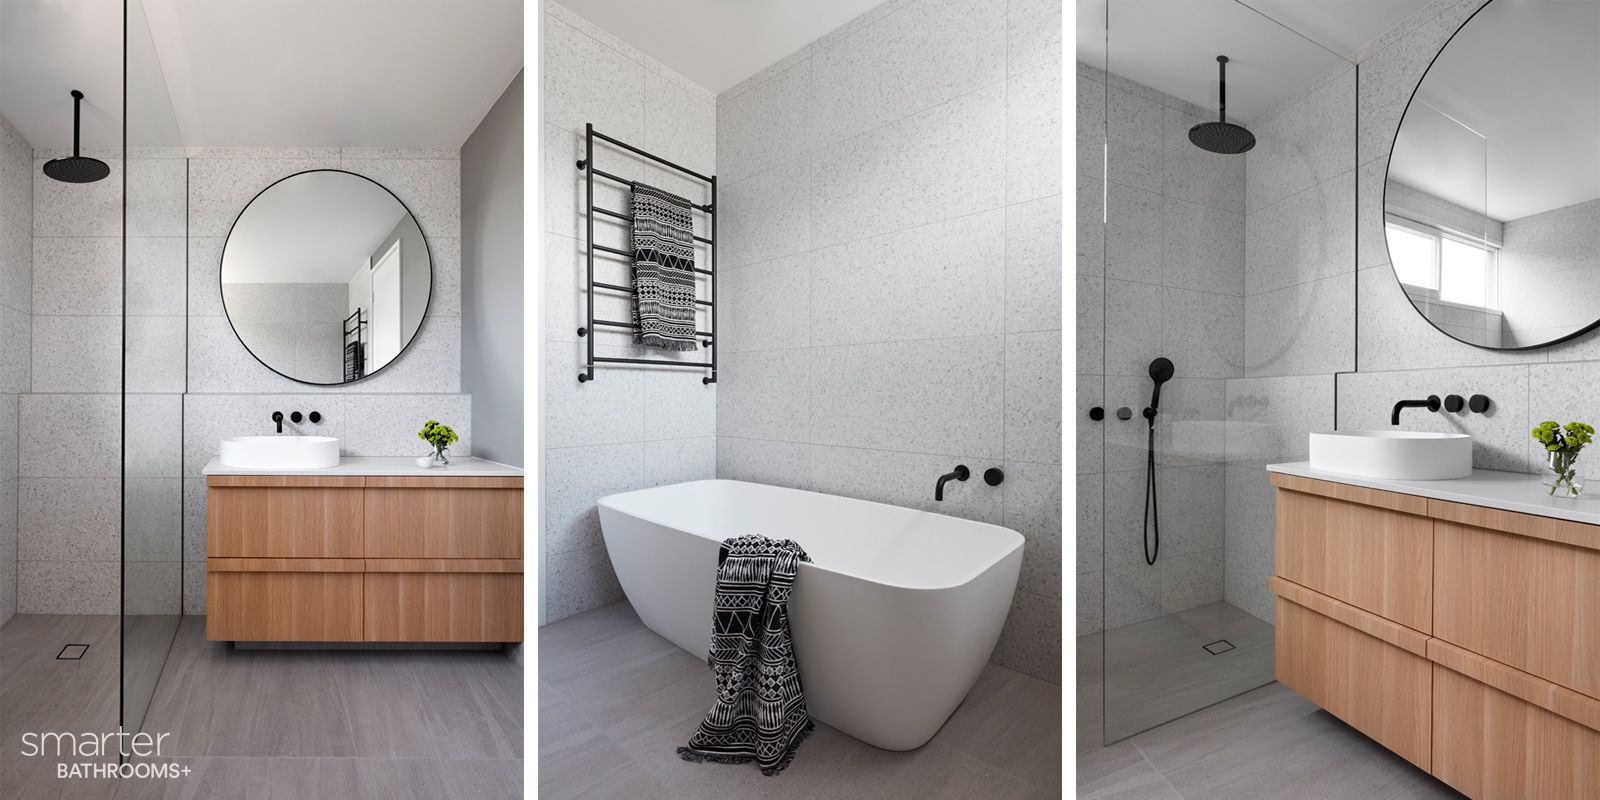 bathroom kitchen renovations melbourne award winning on bathroom renovation ideas melbourne id=99698